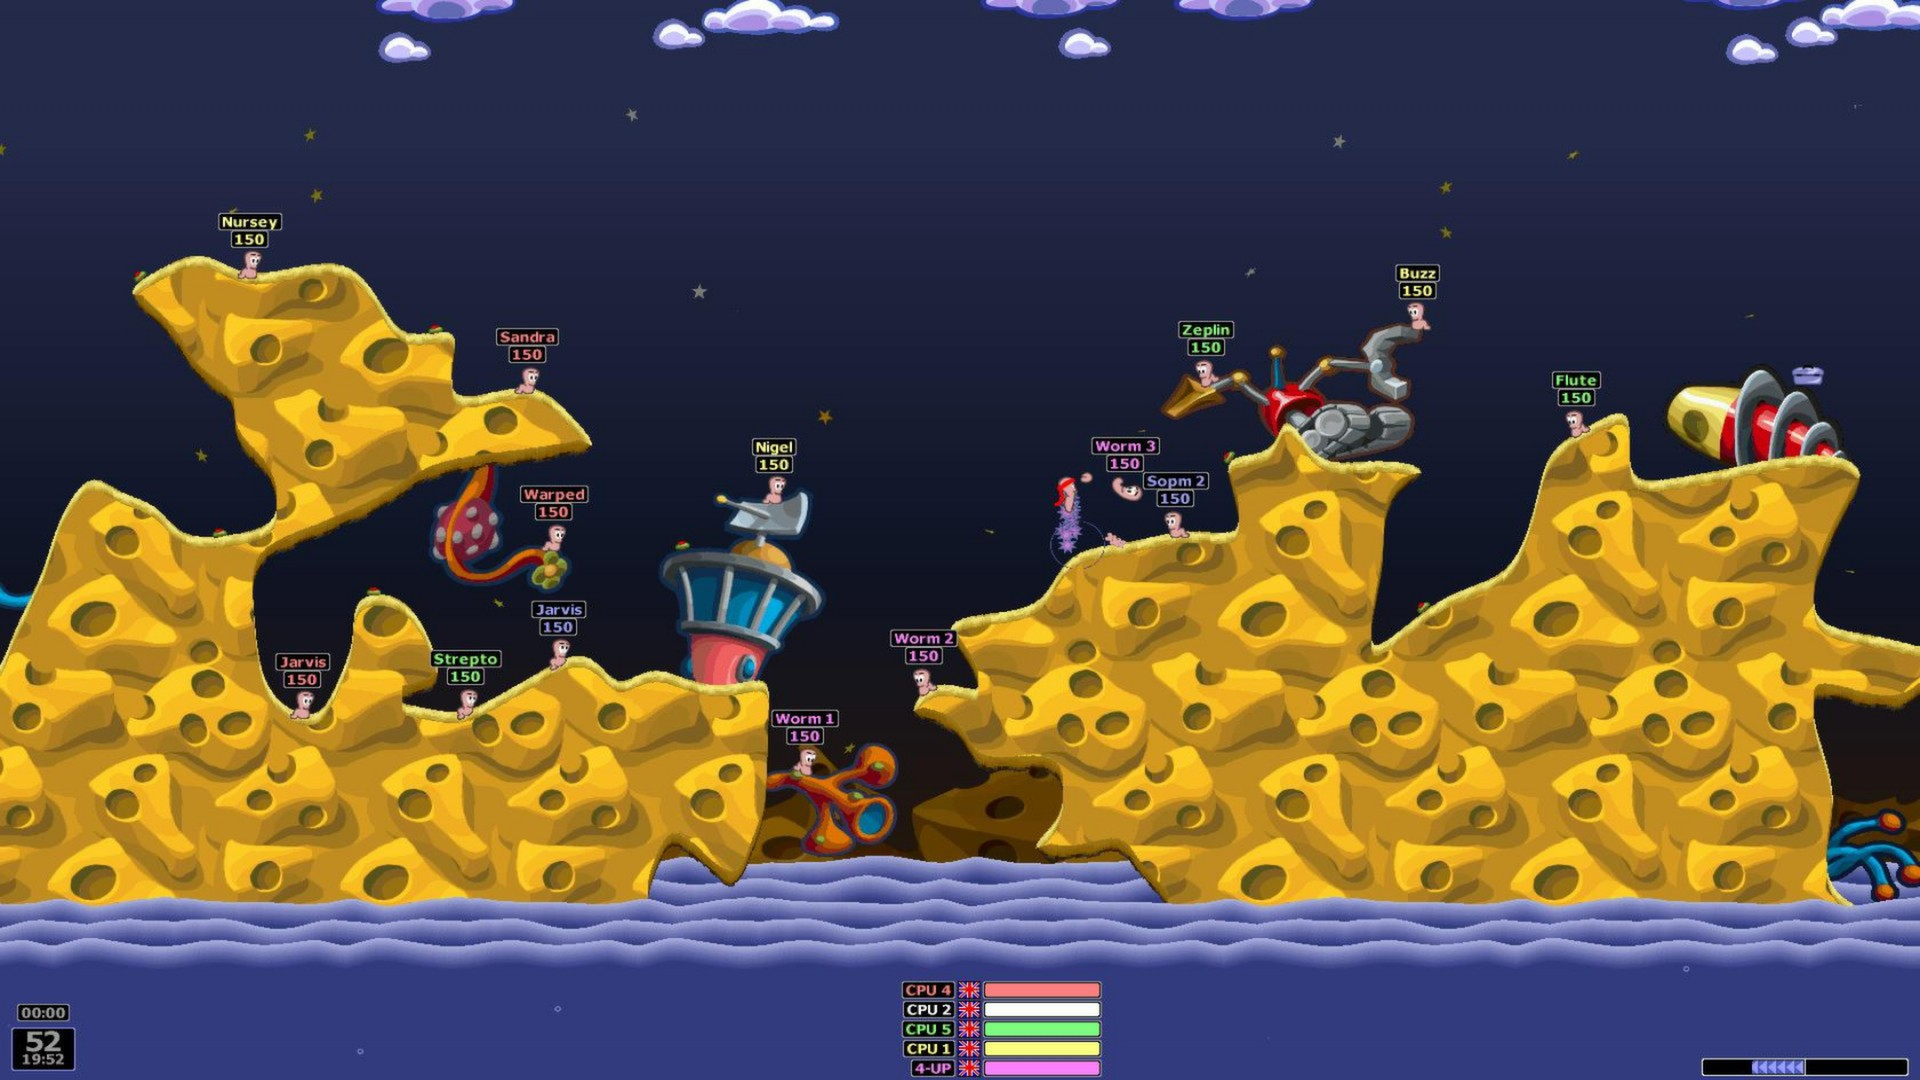 Worms Armageddon screenshot 1